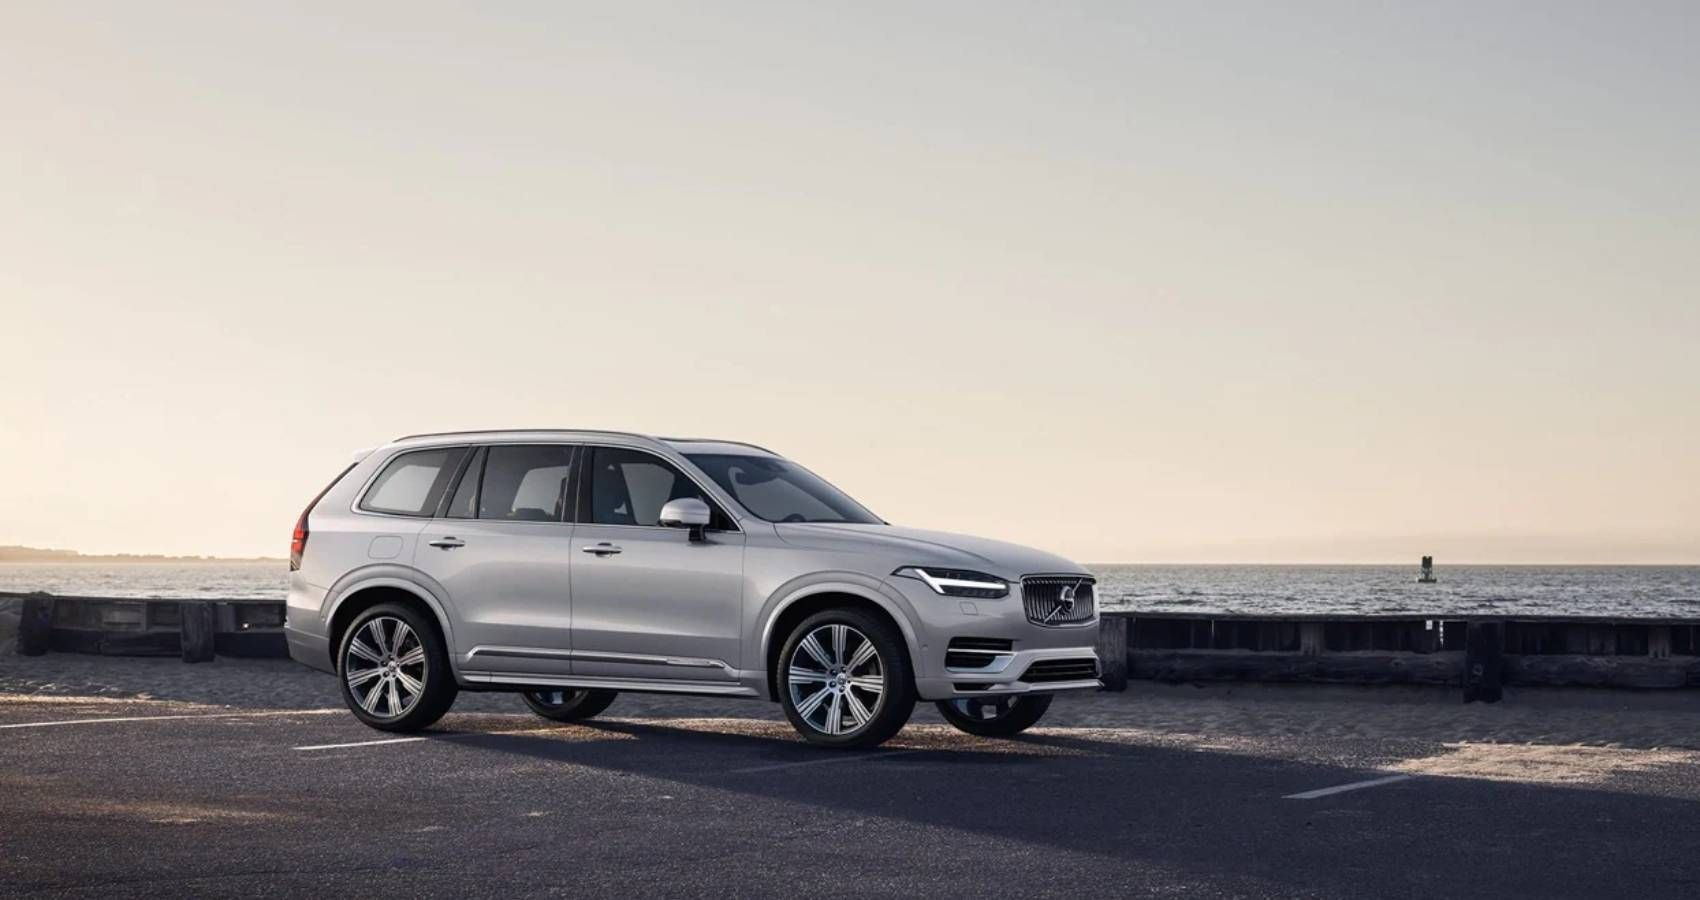 Here Is What We Know So Far About The 2022 Volvo XC90